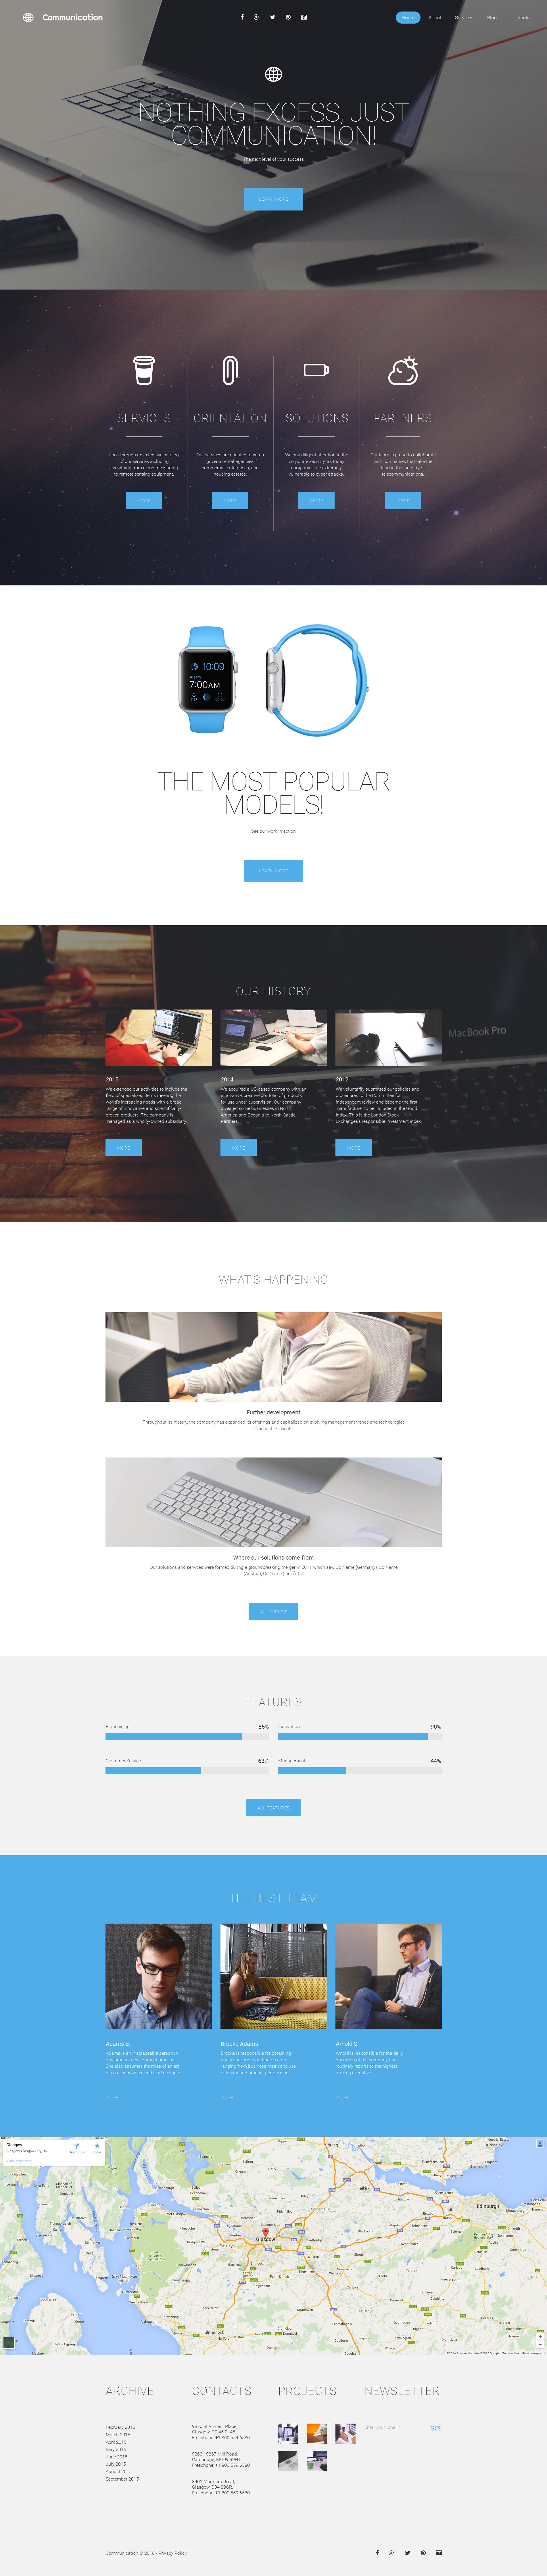 Responsive Communications Templates Moto Cms 3 #58854